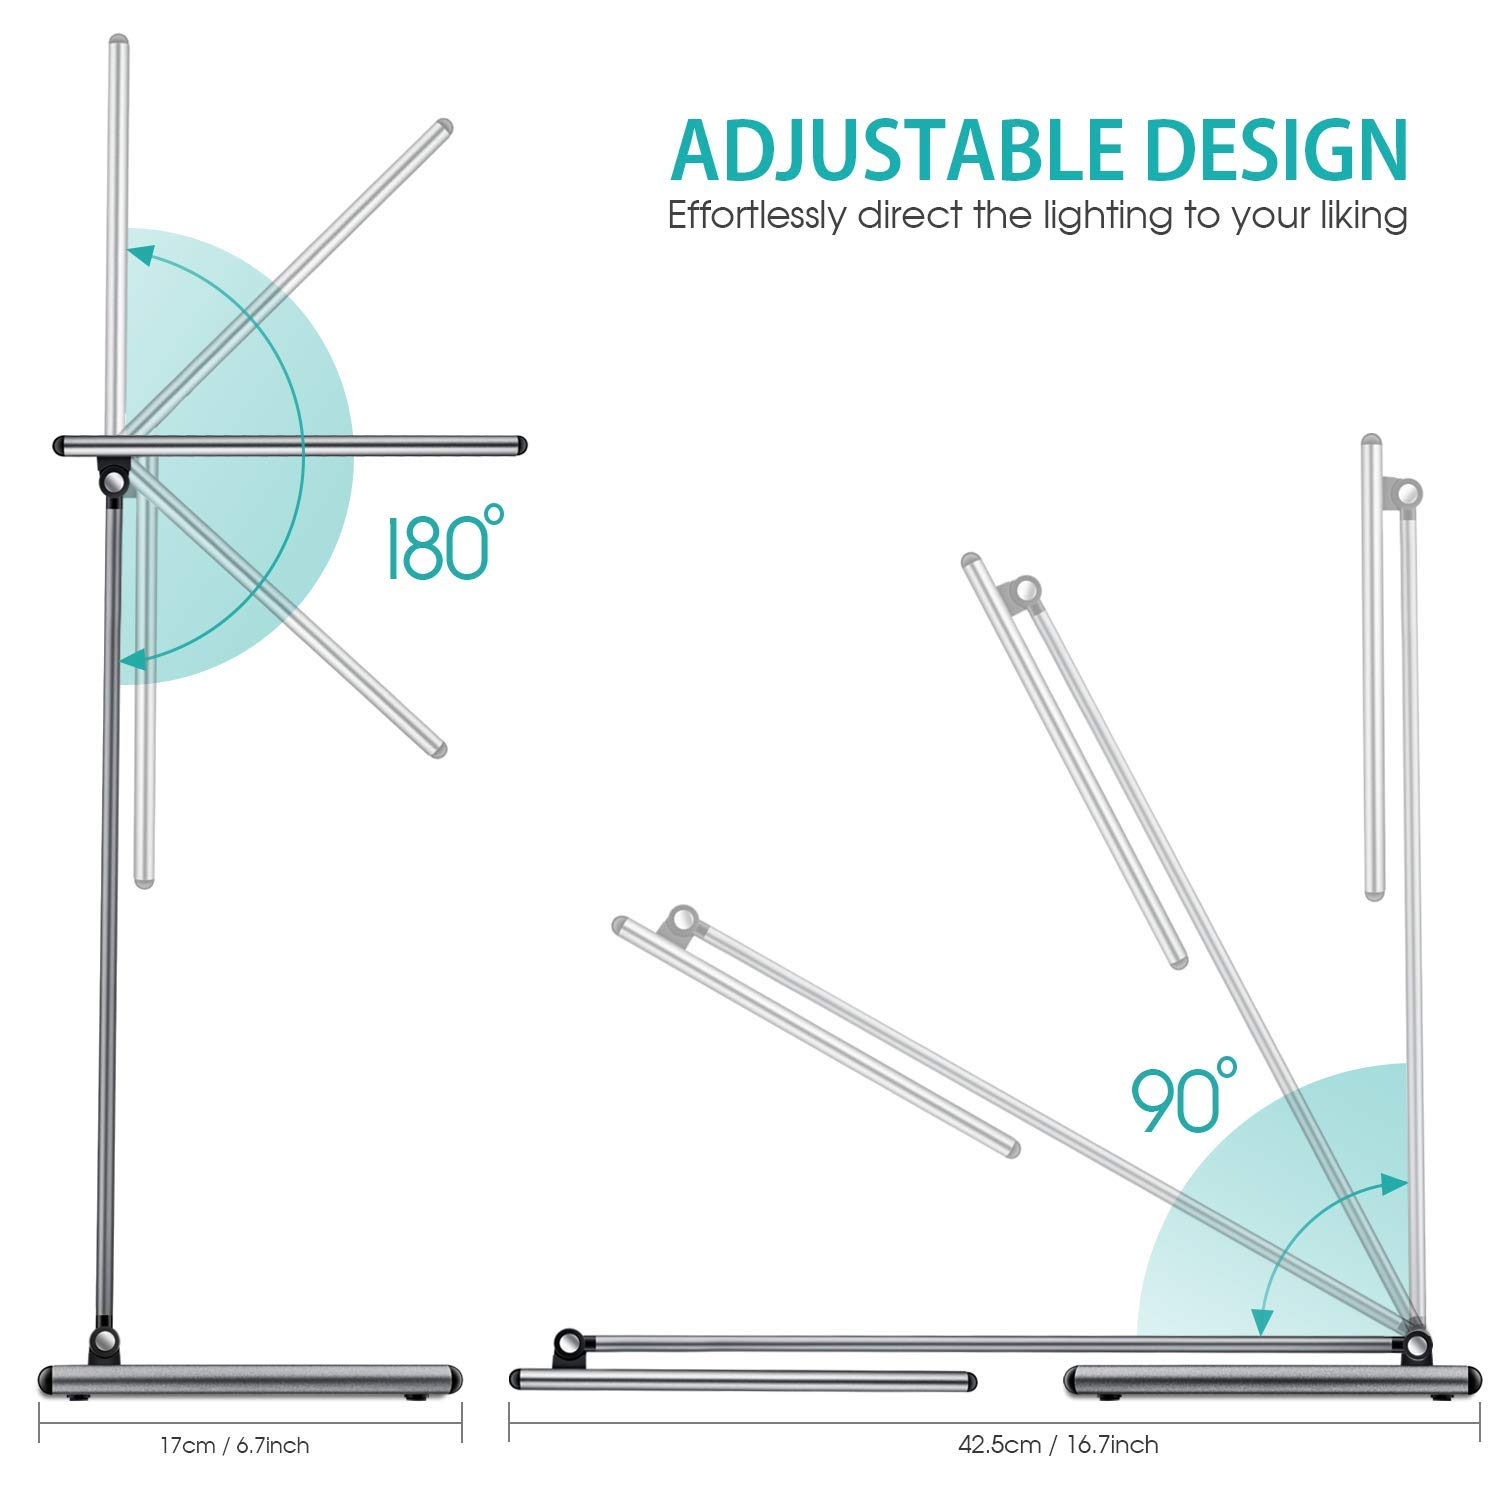 FXQ LED Desk Lamp - Aluminum Alloy Dimmable Table Lamps, Eye-Caring Office Lighting Study Lamp with Full Touch Control, Stepless Dimming and Faster USB Charging Port, 72 Non-Flicking LED Beads